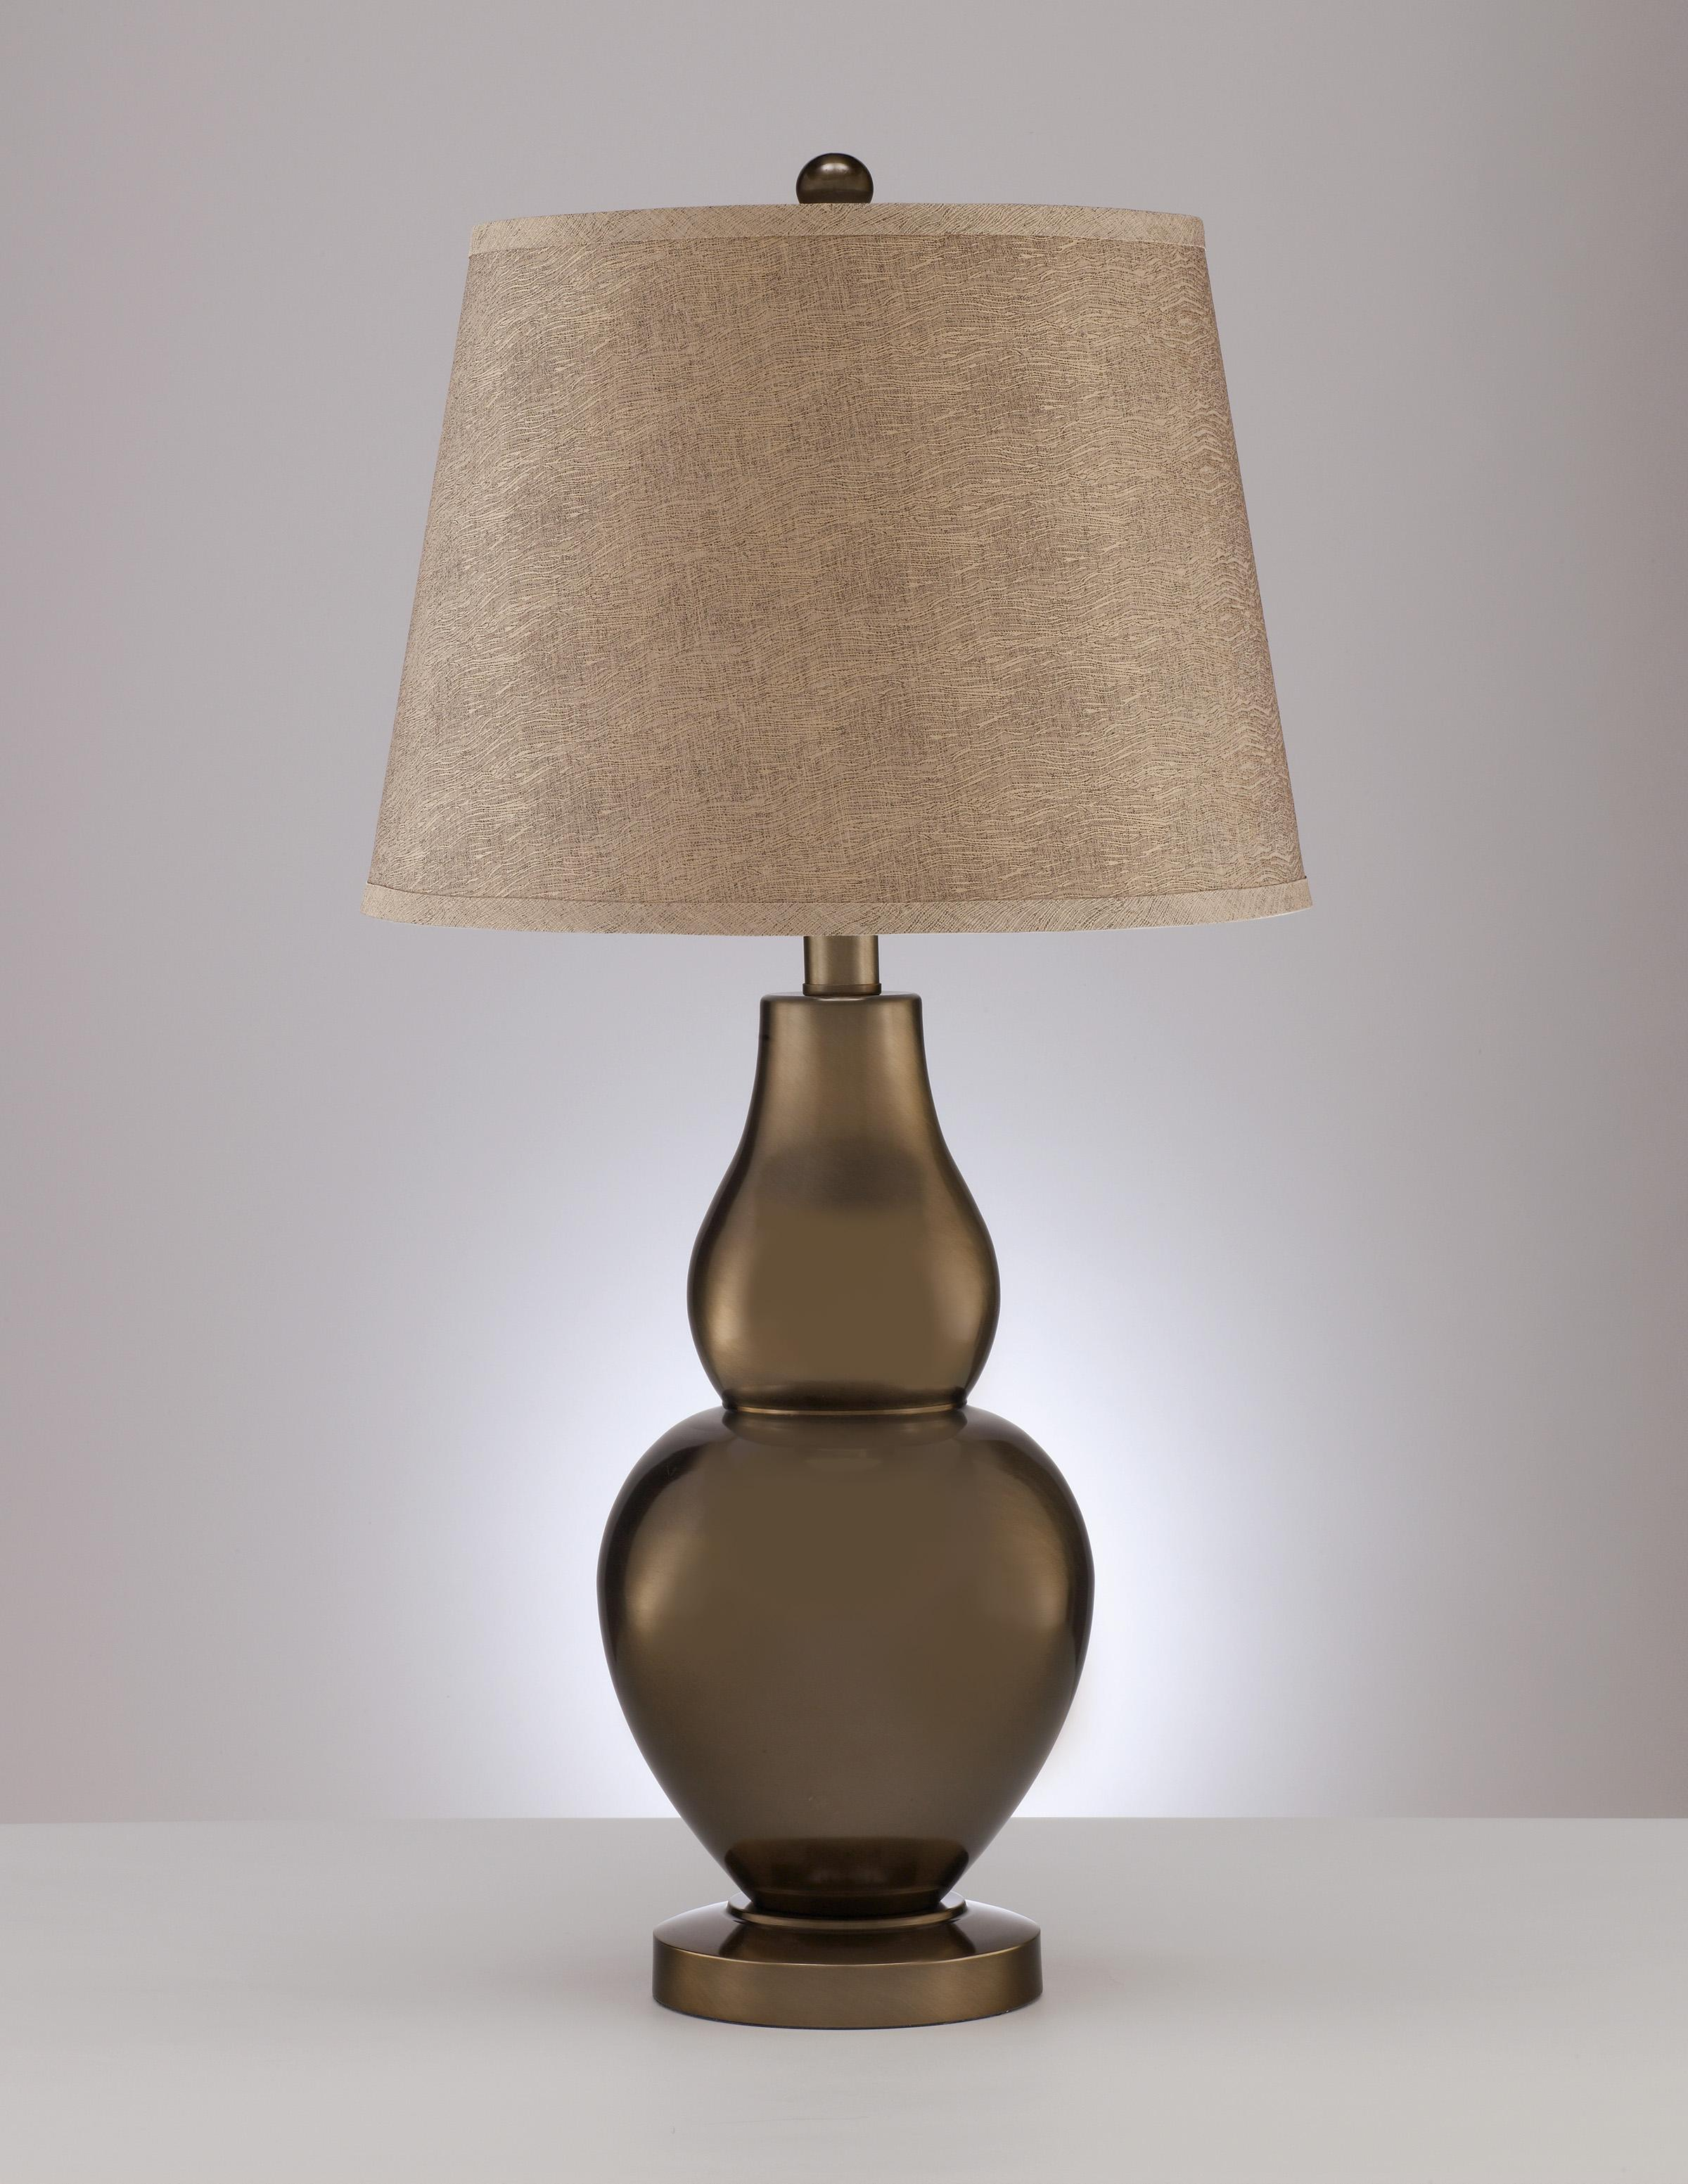 Mavia pair of lamps